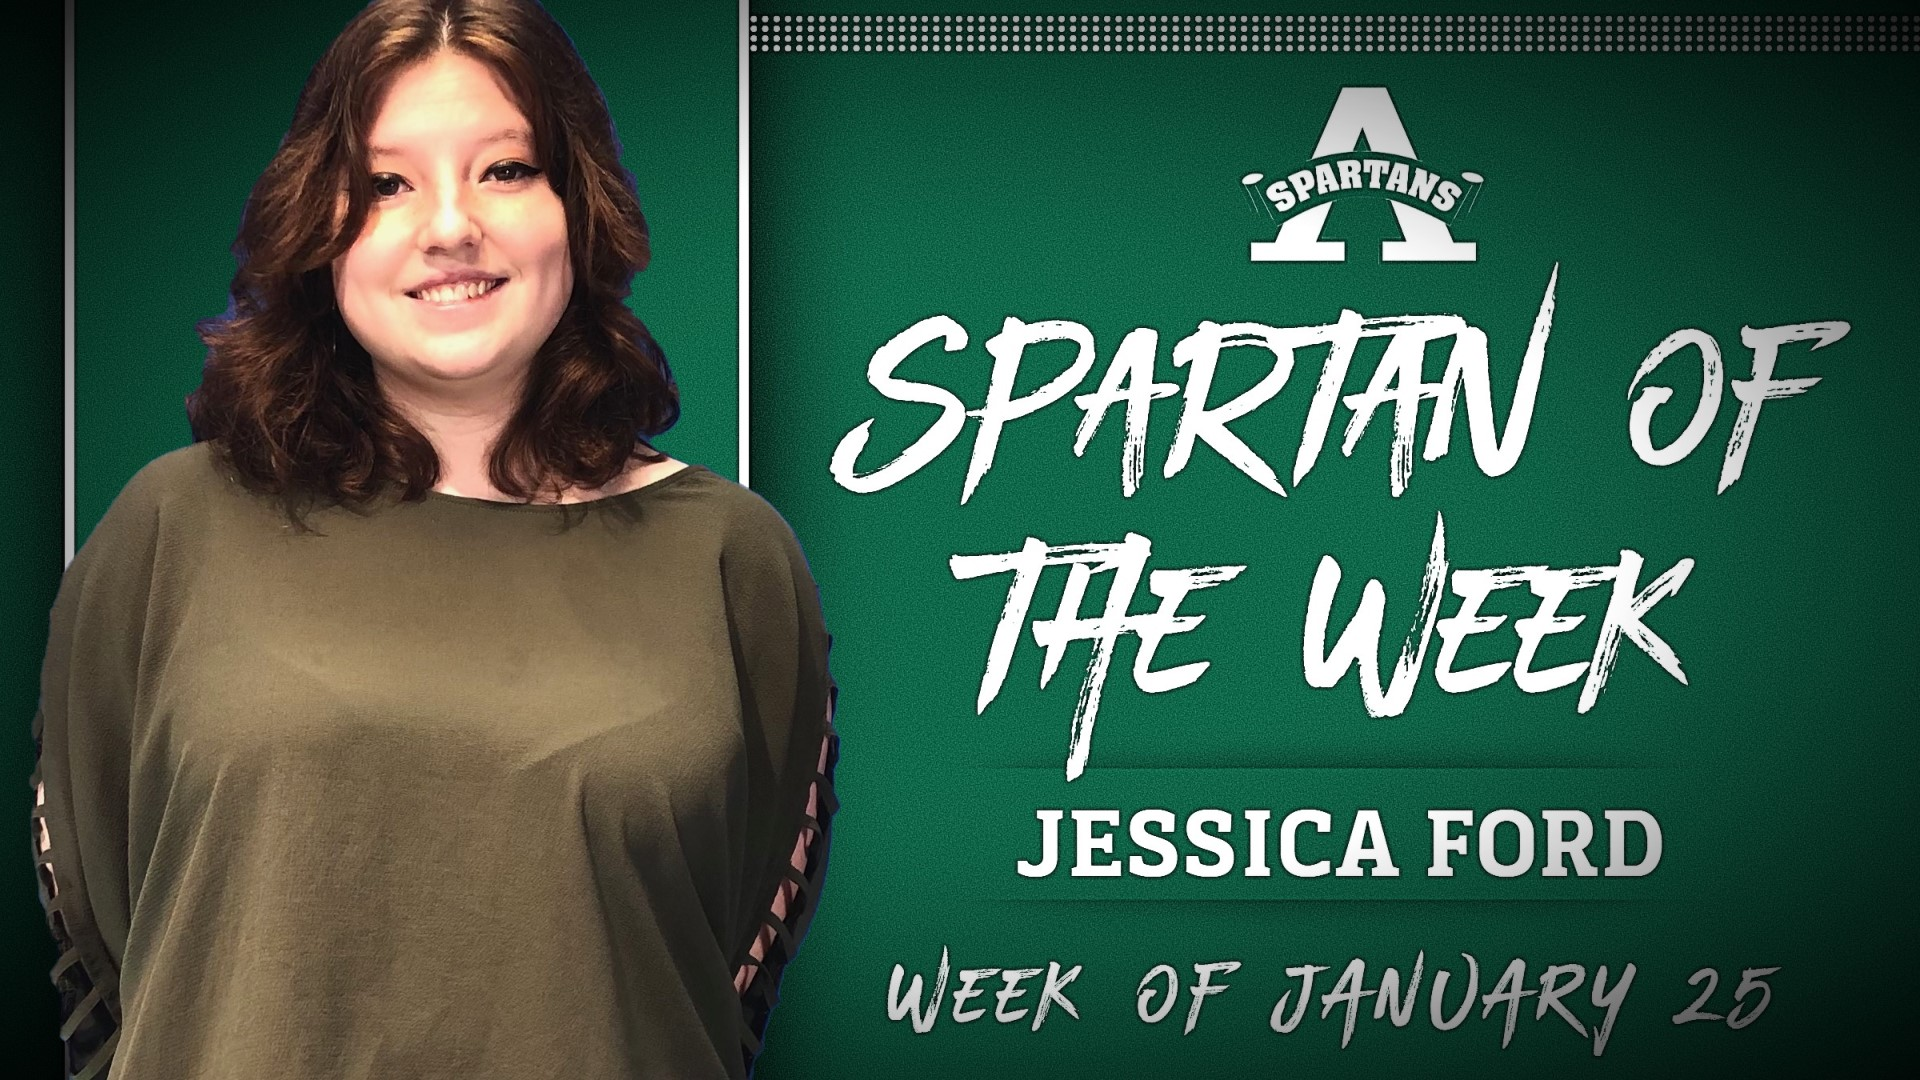 Spartan of the Week - Jessica Ford